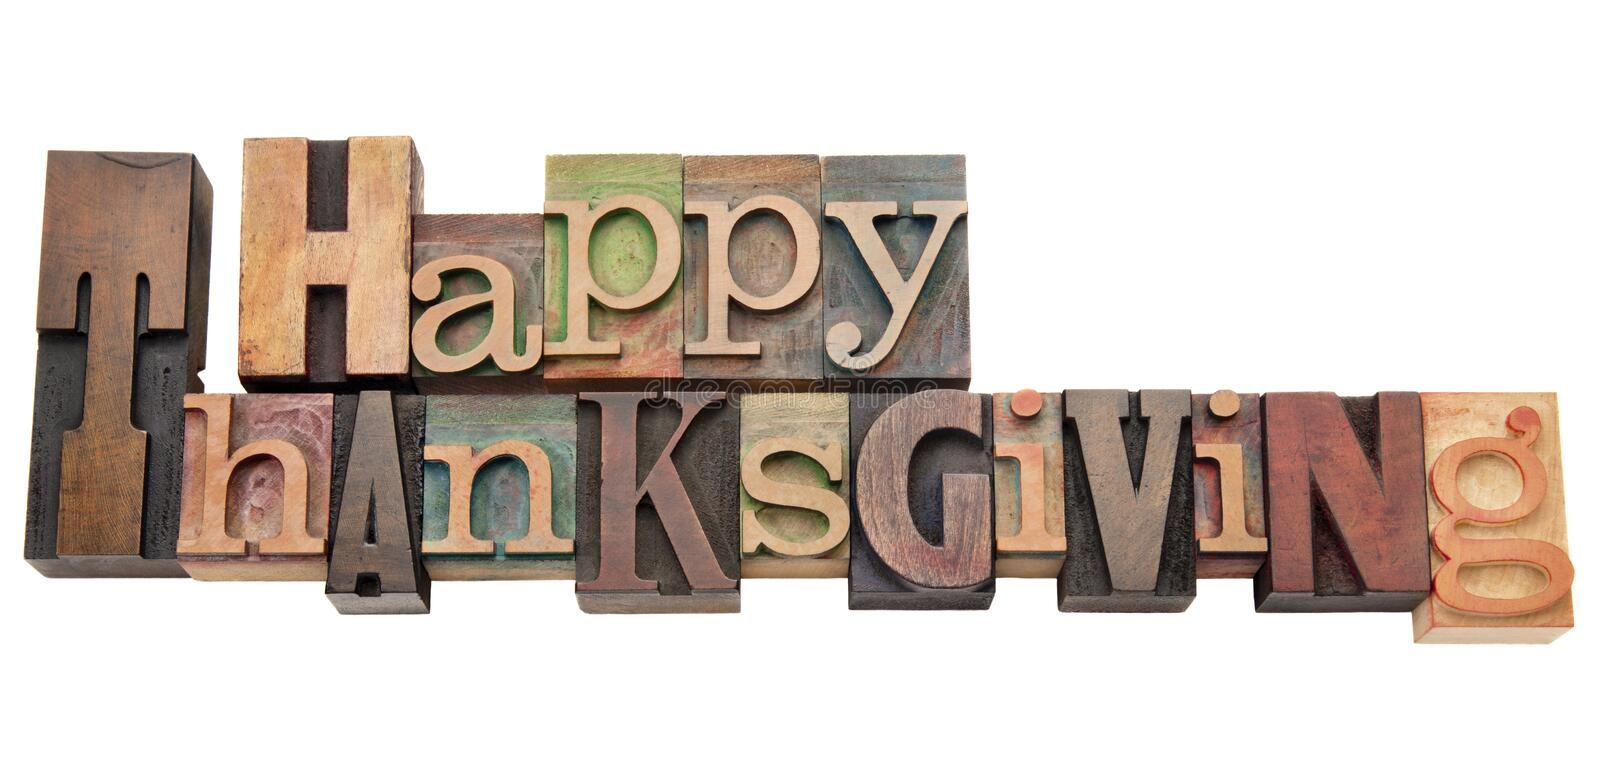 Happy Thanksgiving in letterpress type stock images